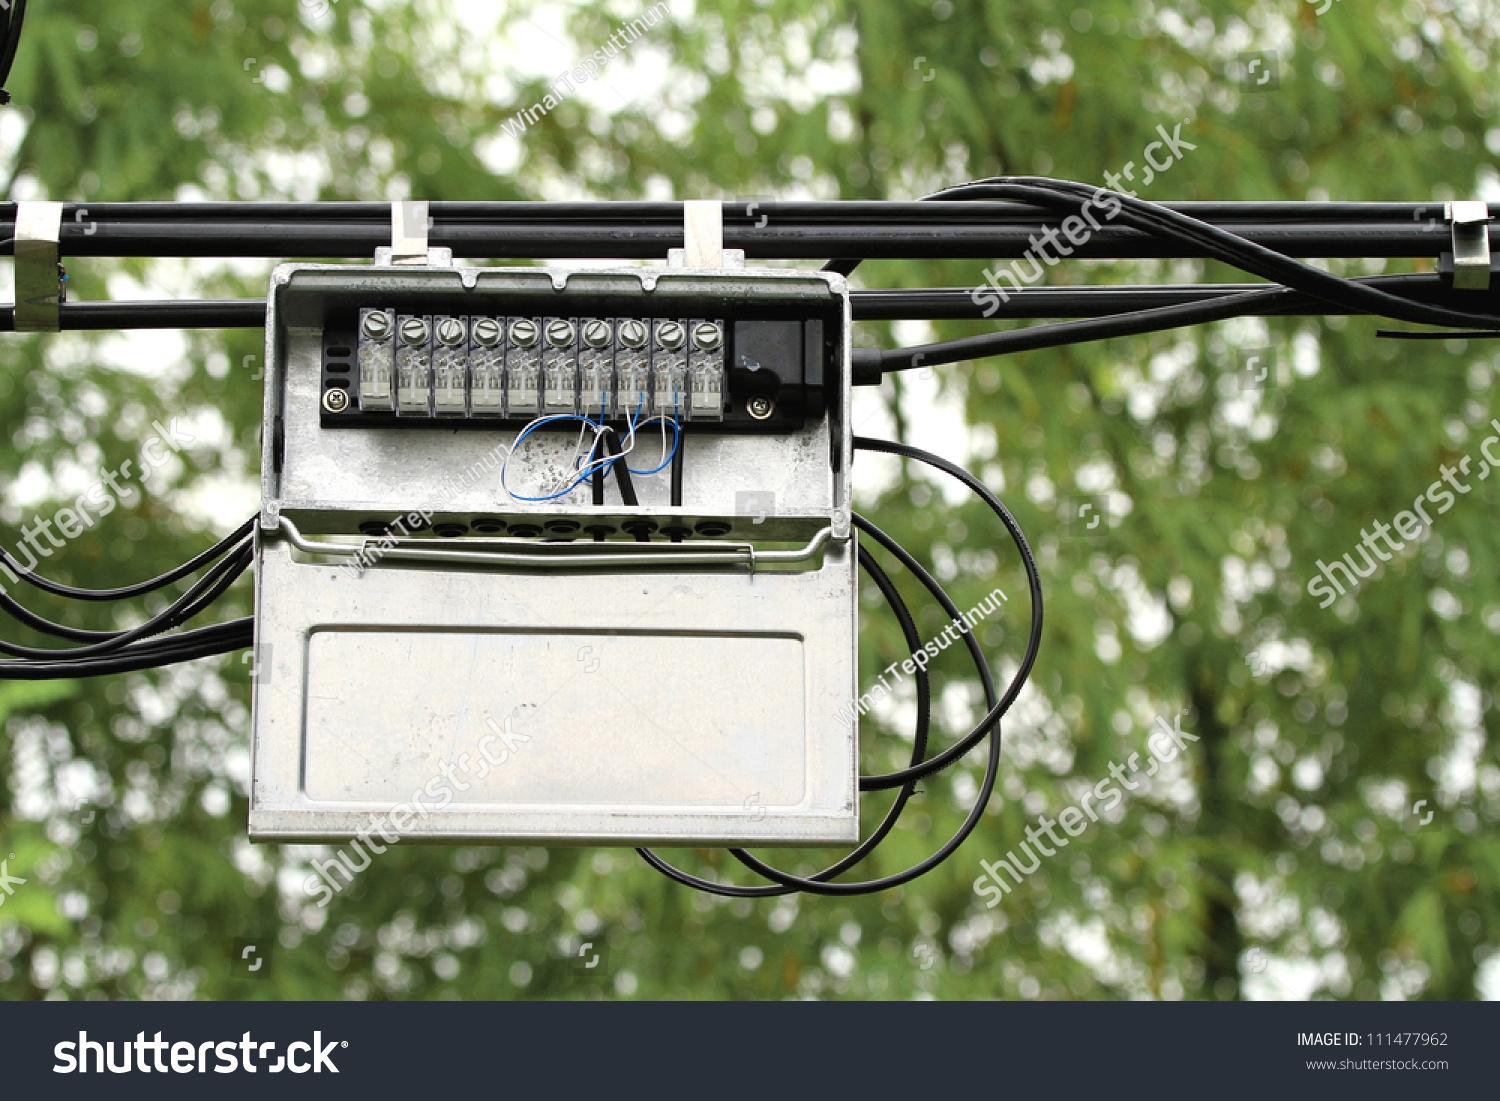 outdoor junction box of telephone cable stock photo 111477962 shutterstock